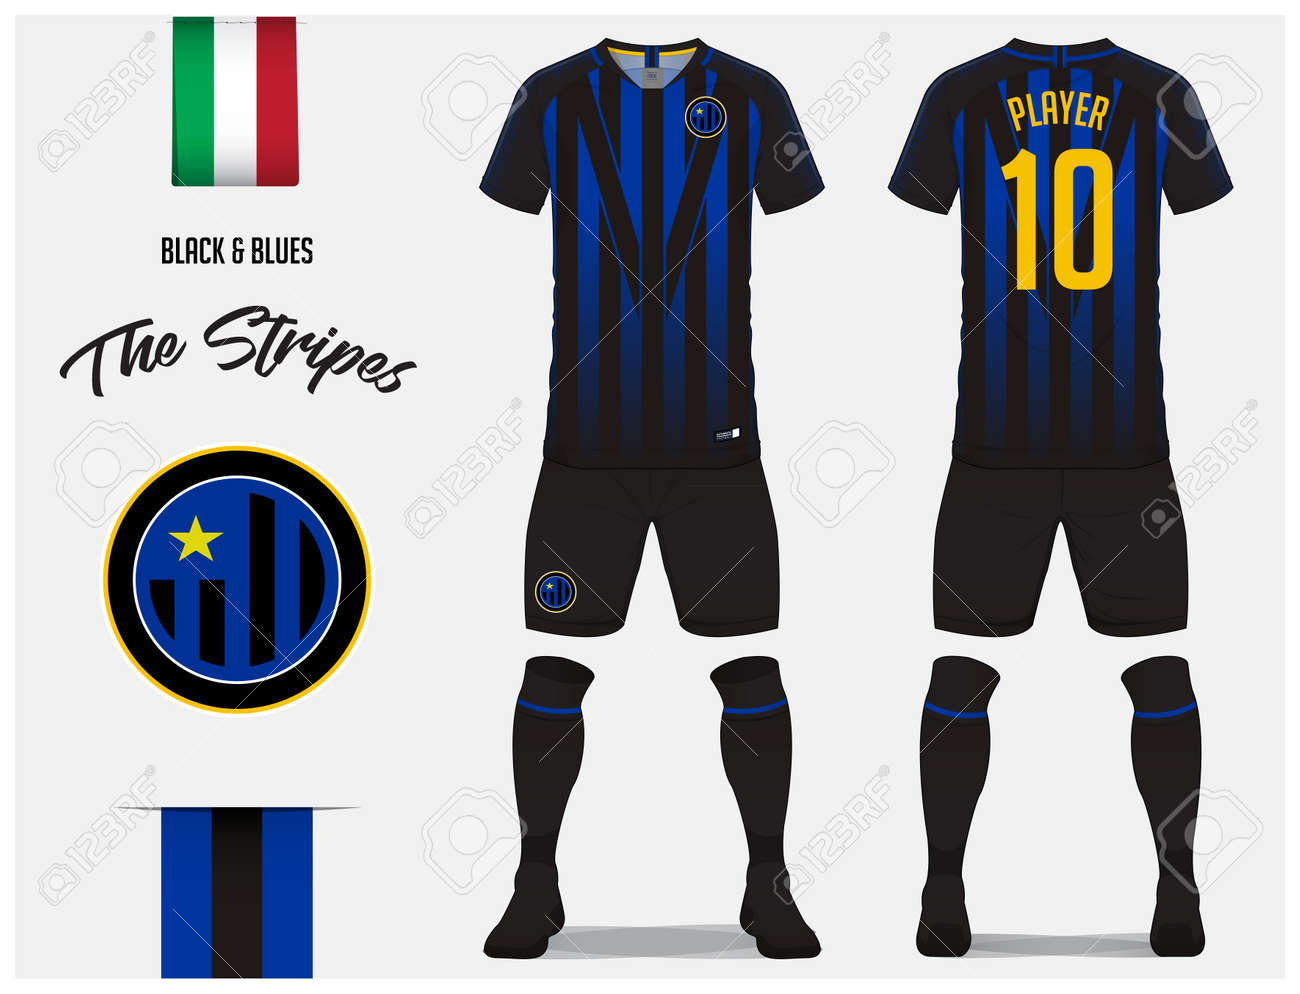 738bb9a06e93 Soccer jersey or football kit template for football club. Blue and black  stripe football shirt with sock and blue shorts mock up. Front and back  view soccer ...